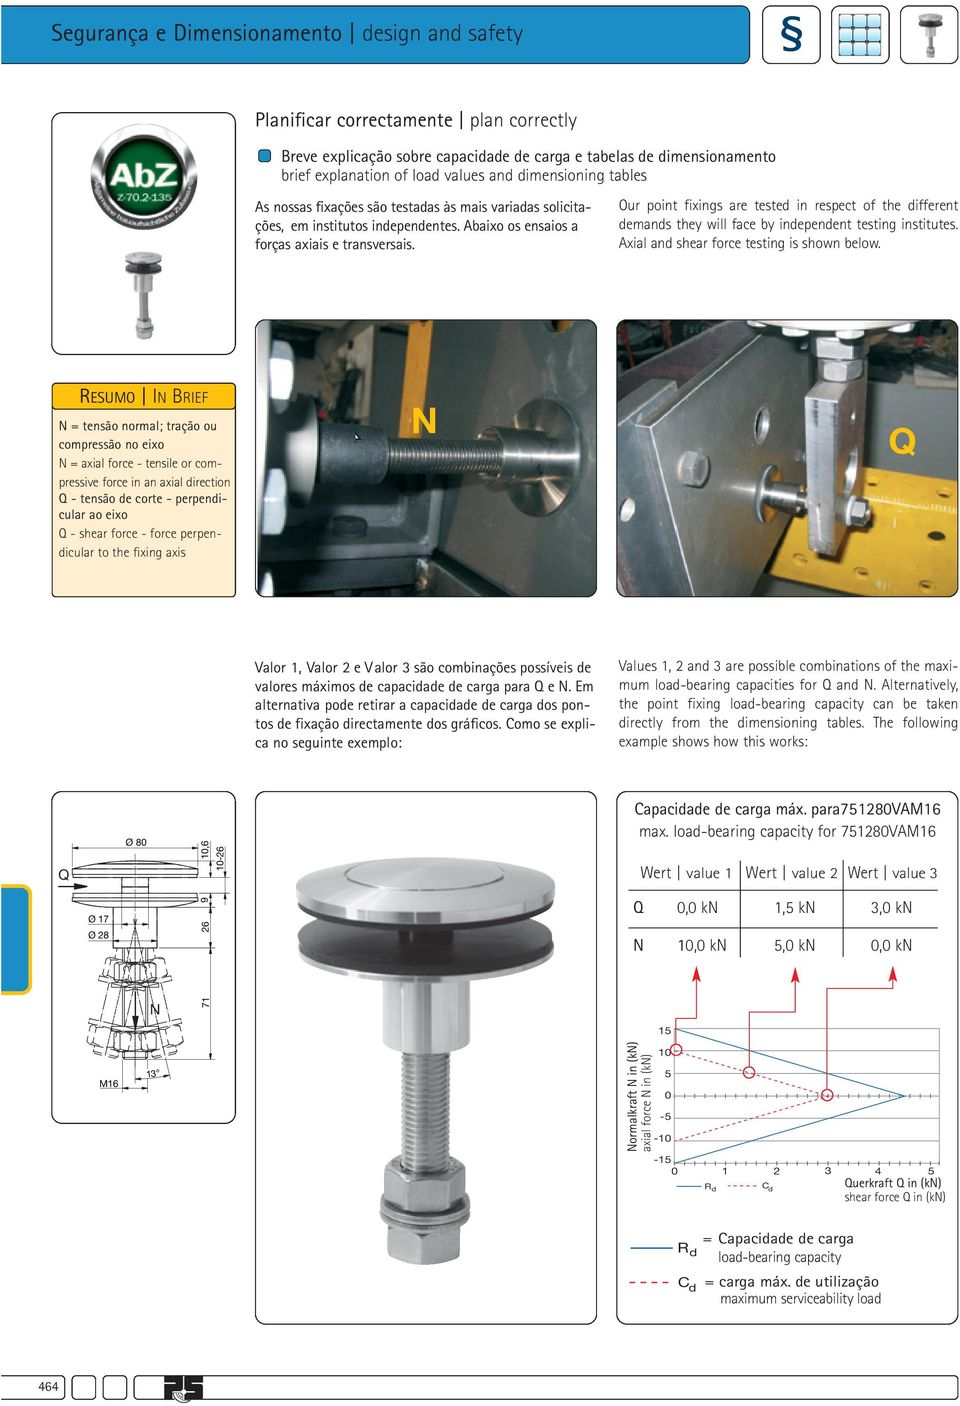 Our point fixings are tested in respect of the different demands they will face by independent testing institutes. Axial and shear force testing is shown below.